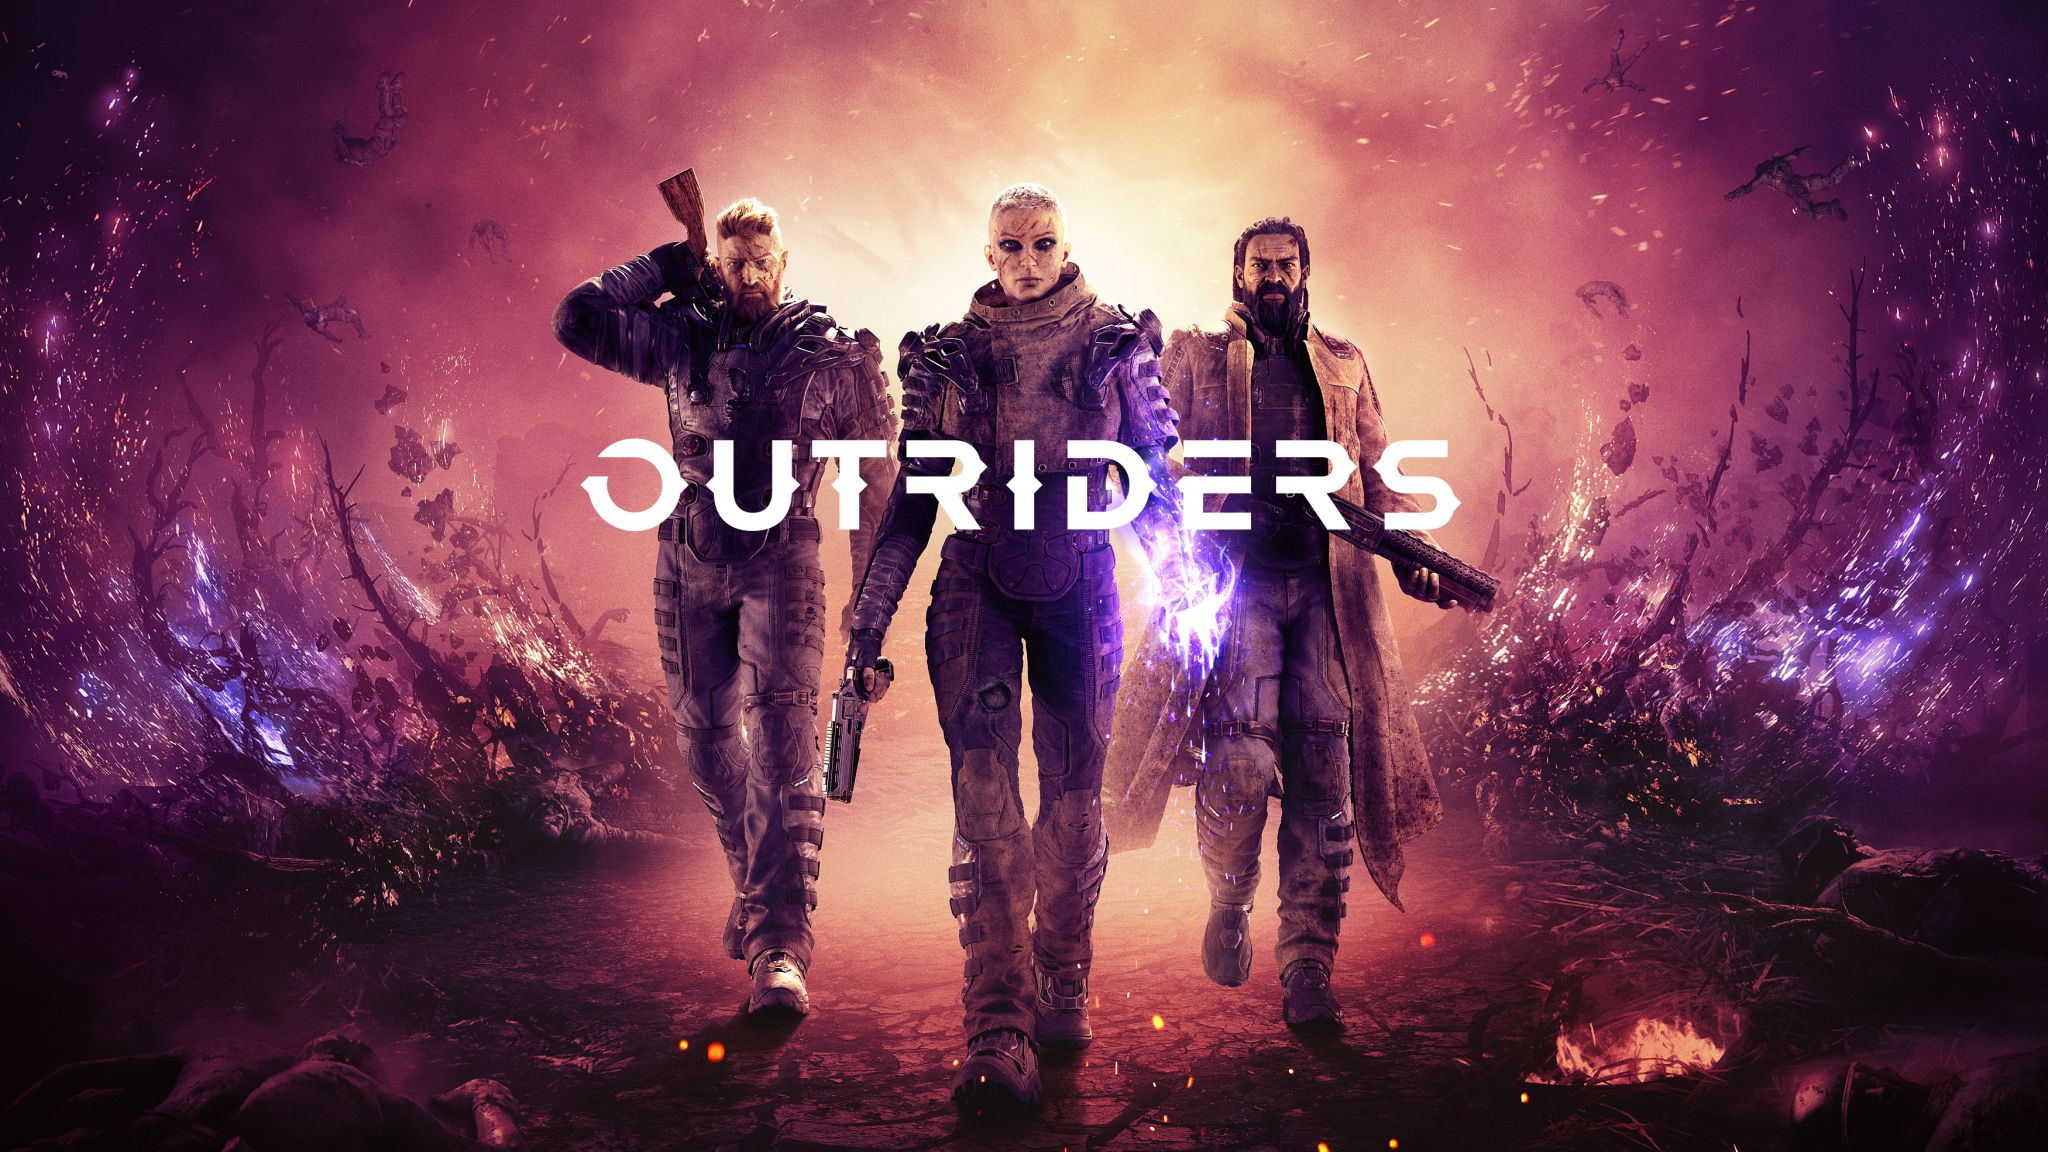 wp6897102-outriders-beyond-the-frontier-hd-wallpapers (1)